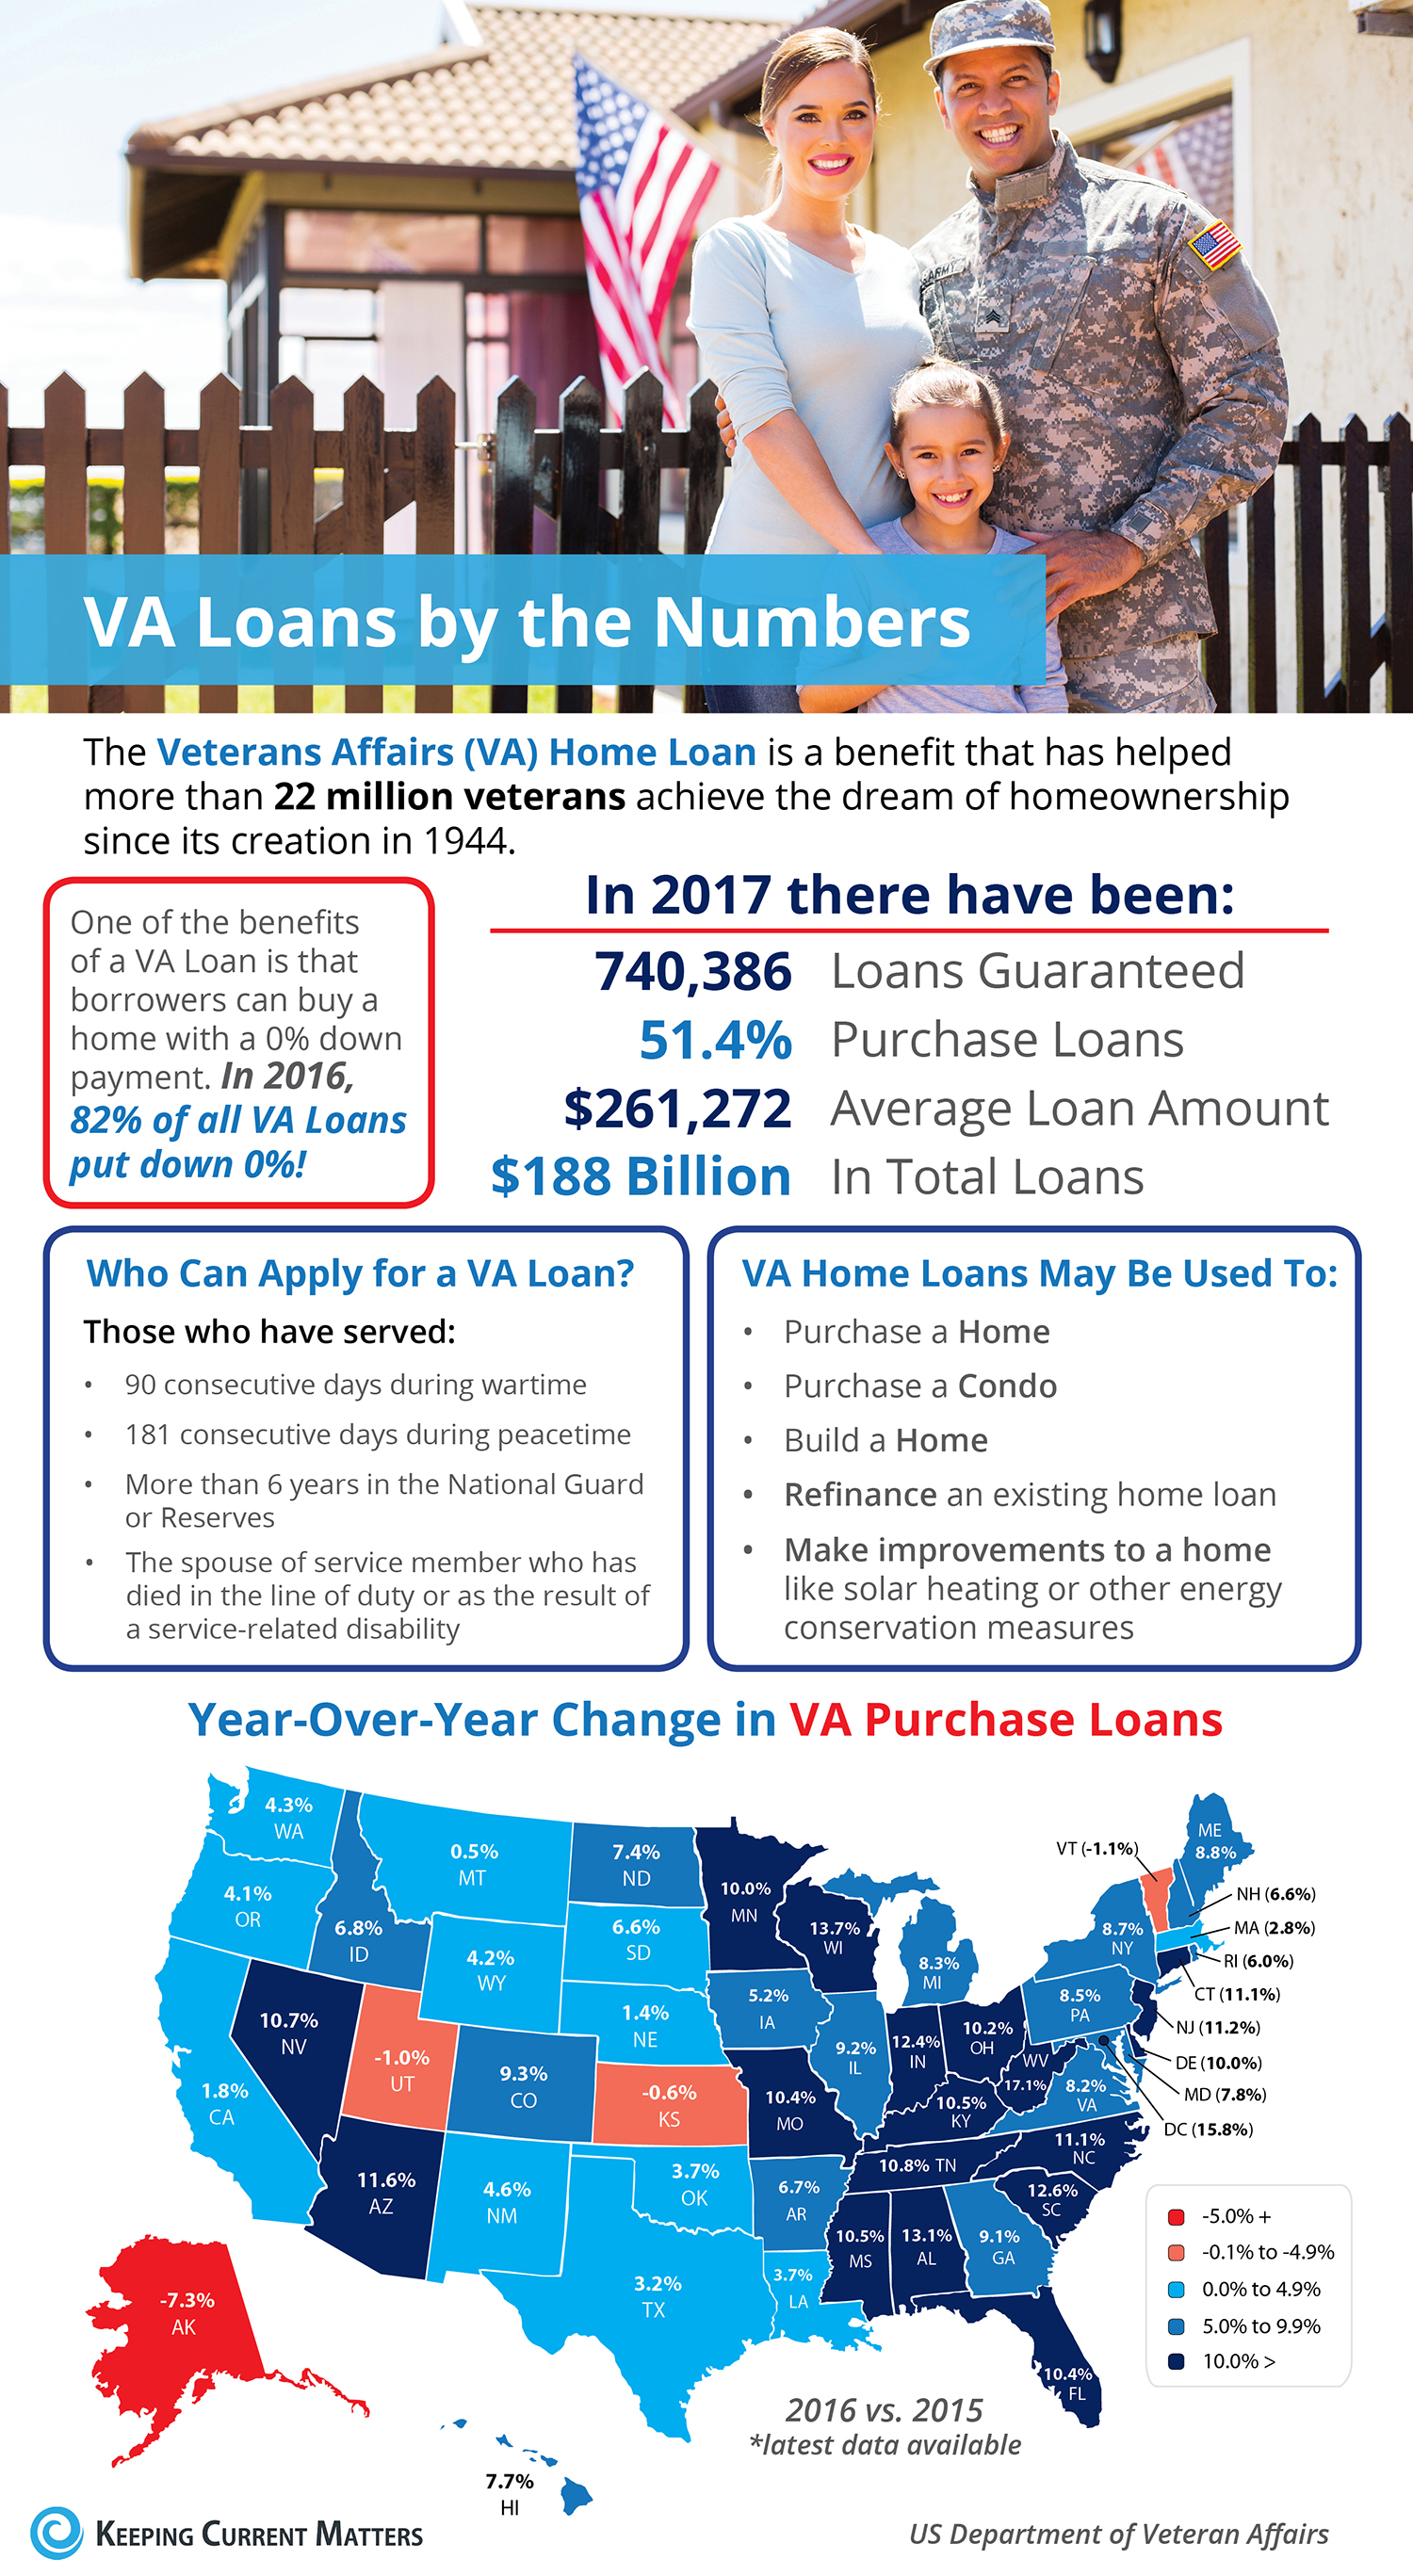 Veterans Affairs Loans by the Numbers [INFOGRAPHIC] | Keeping Current Matters